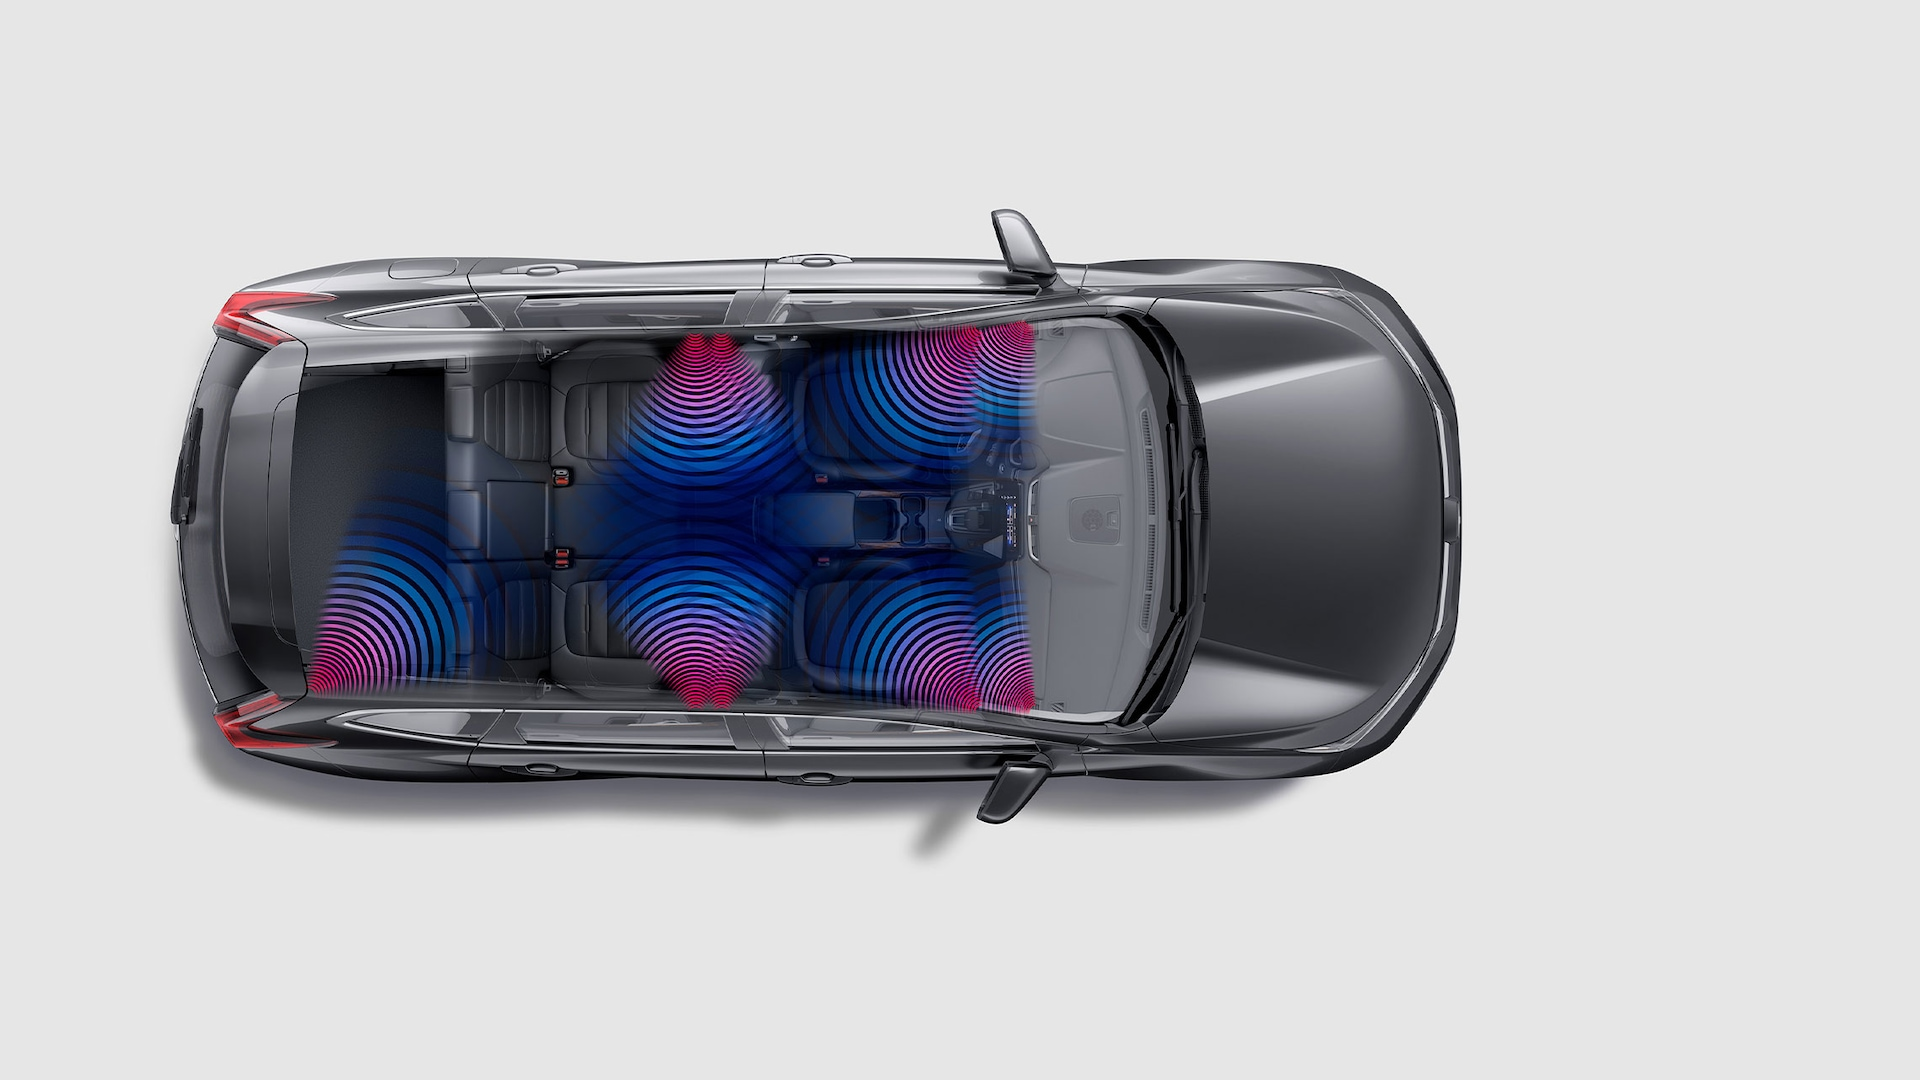 Overhead cutaway view of the 2020 Honda CR-V with illustration showing speaker locations.